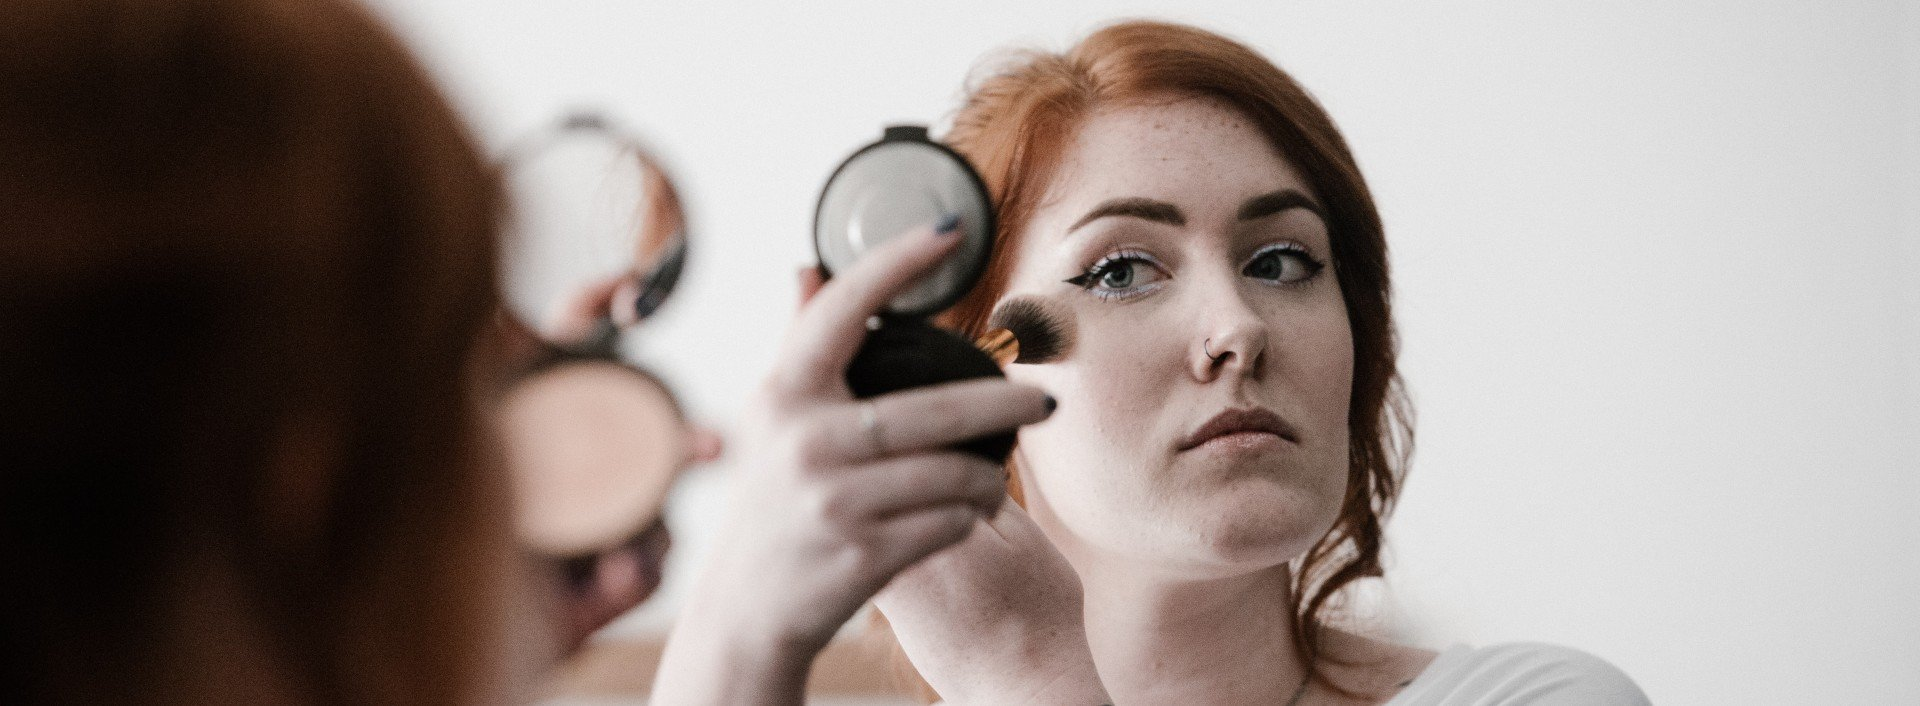 Makeup vocabulary: a woman applies makeup while looking in a handheld mirror.